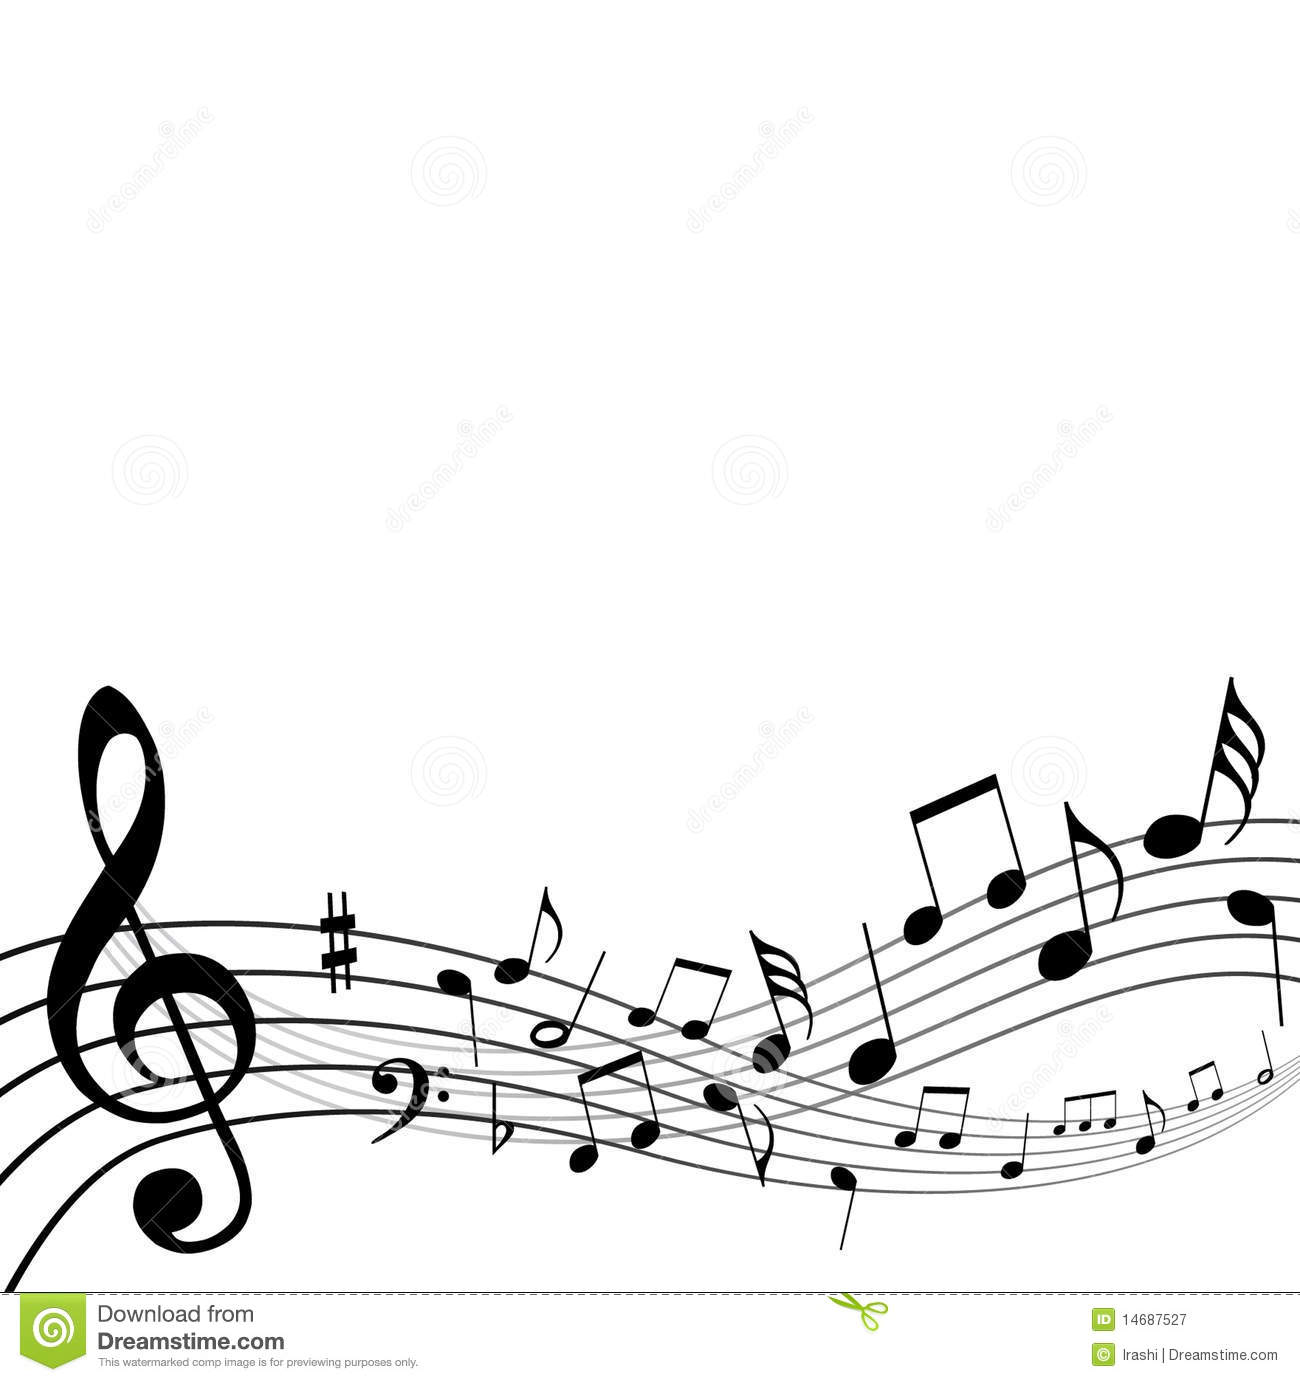 Background music notes stock vector illustration of artistic 14687527 background music notes voltagebd Image collections